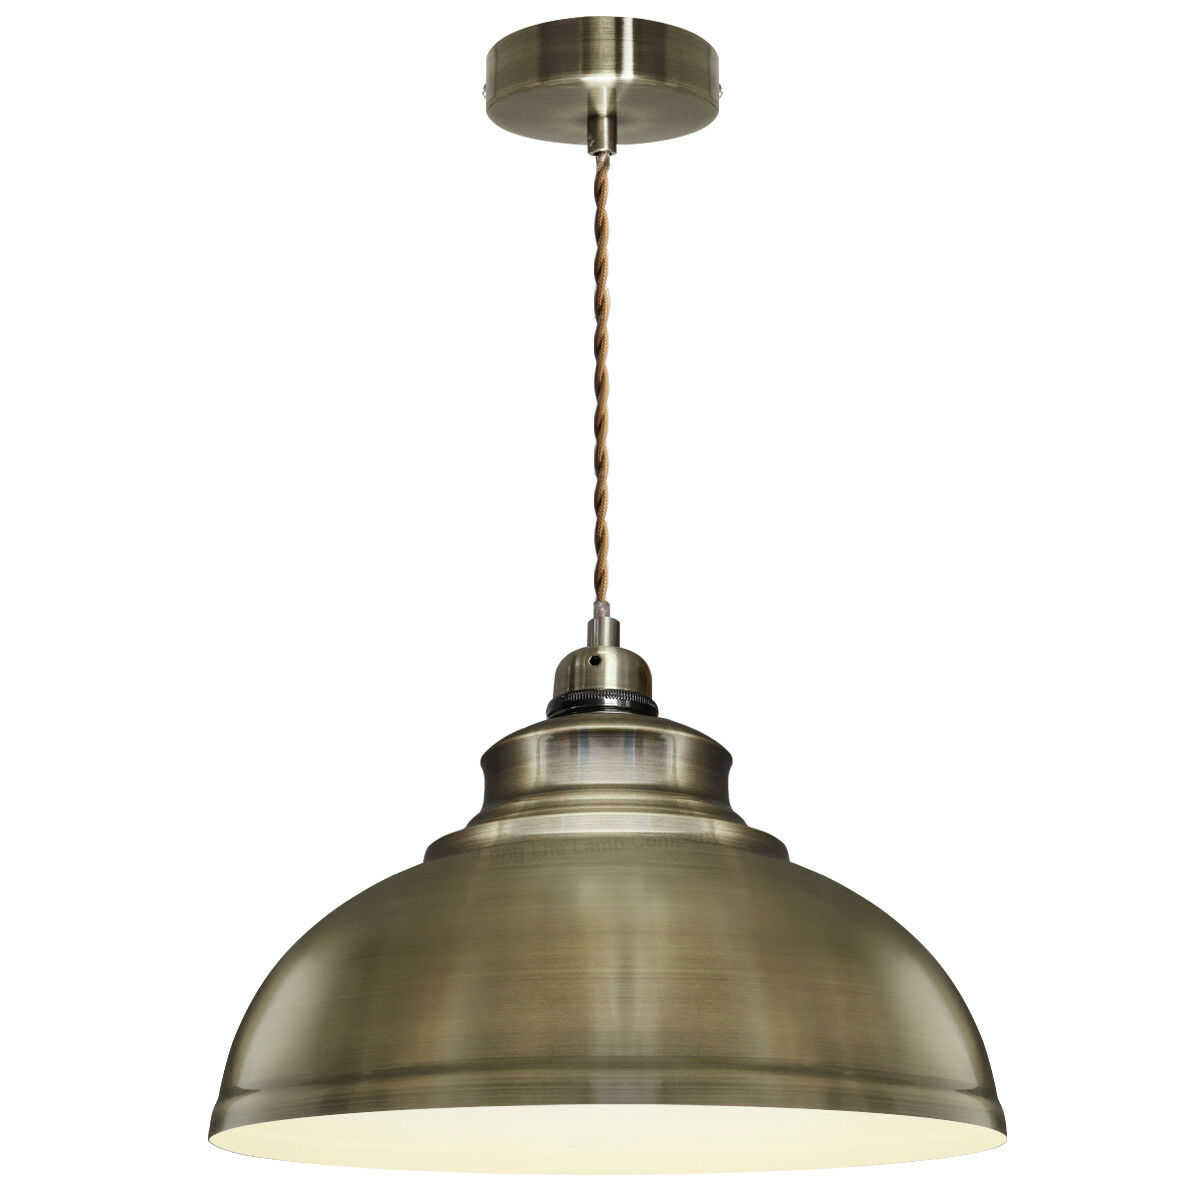 Remarkable Details About Vintage Antique Brass Hanging Ceiling Pendant Dining Room Light With Free Bulb Interior Design Ideas Tzicisoteloinfo